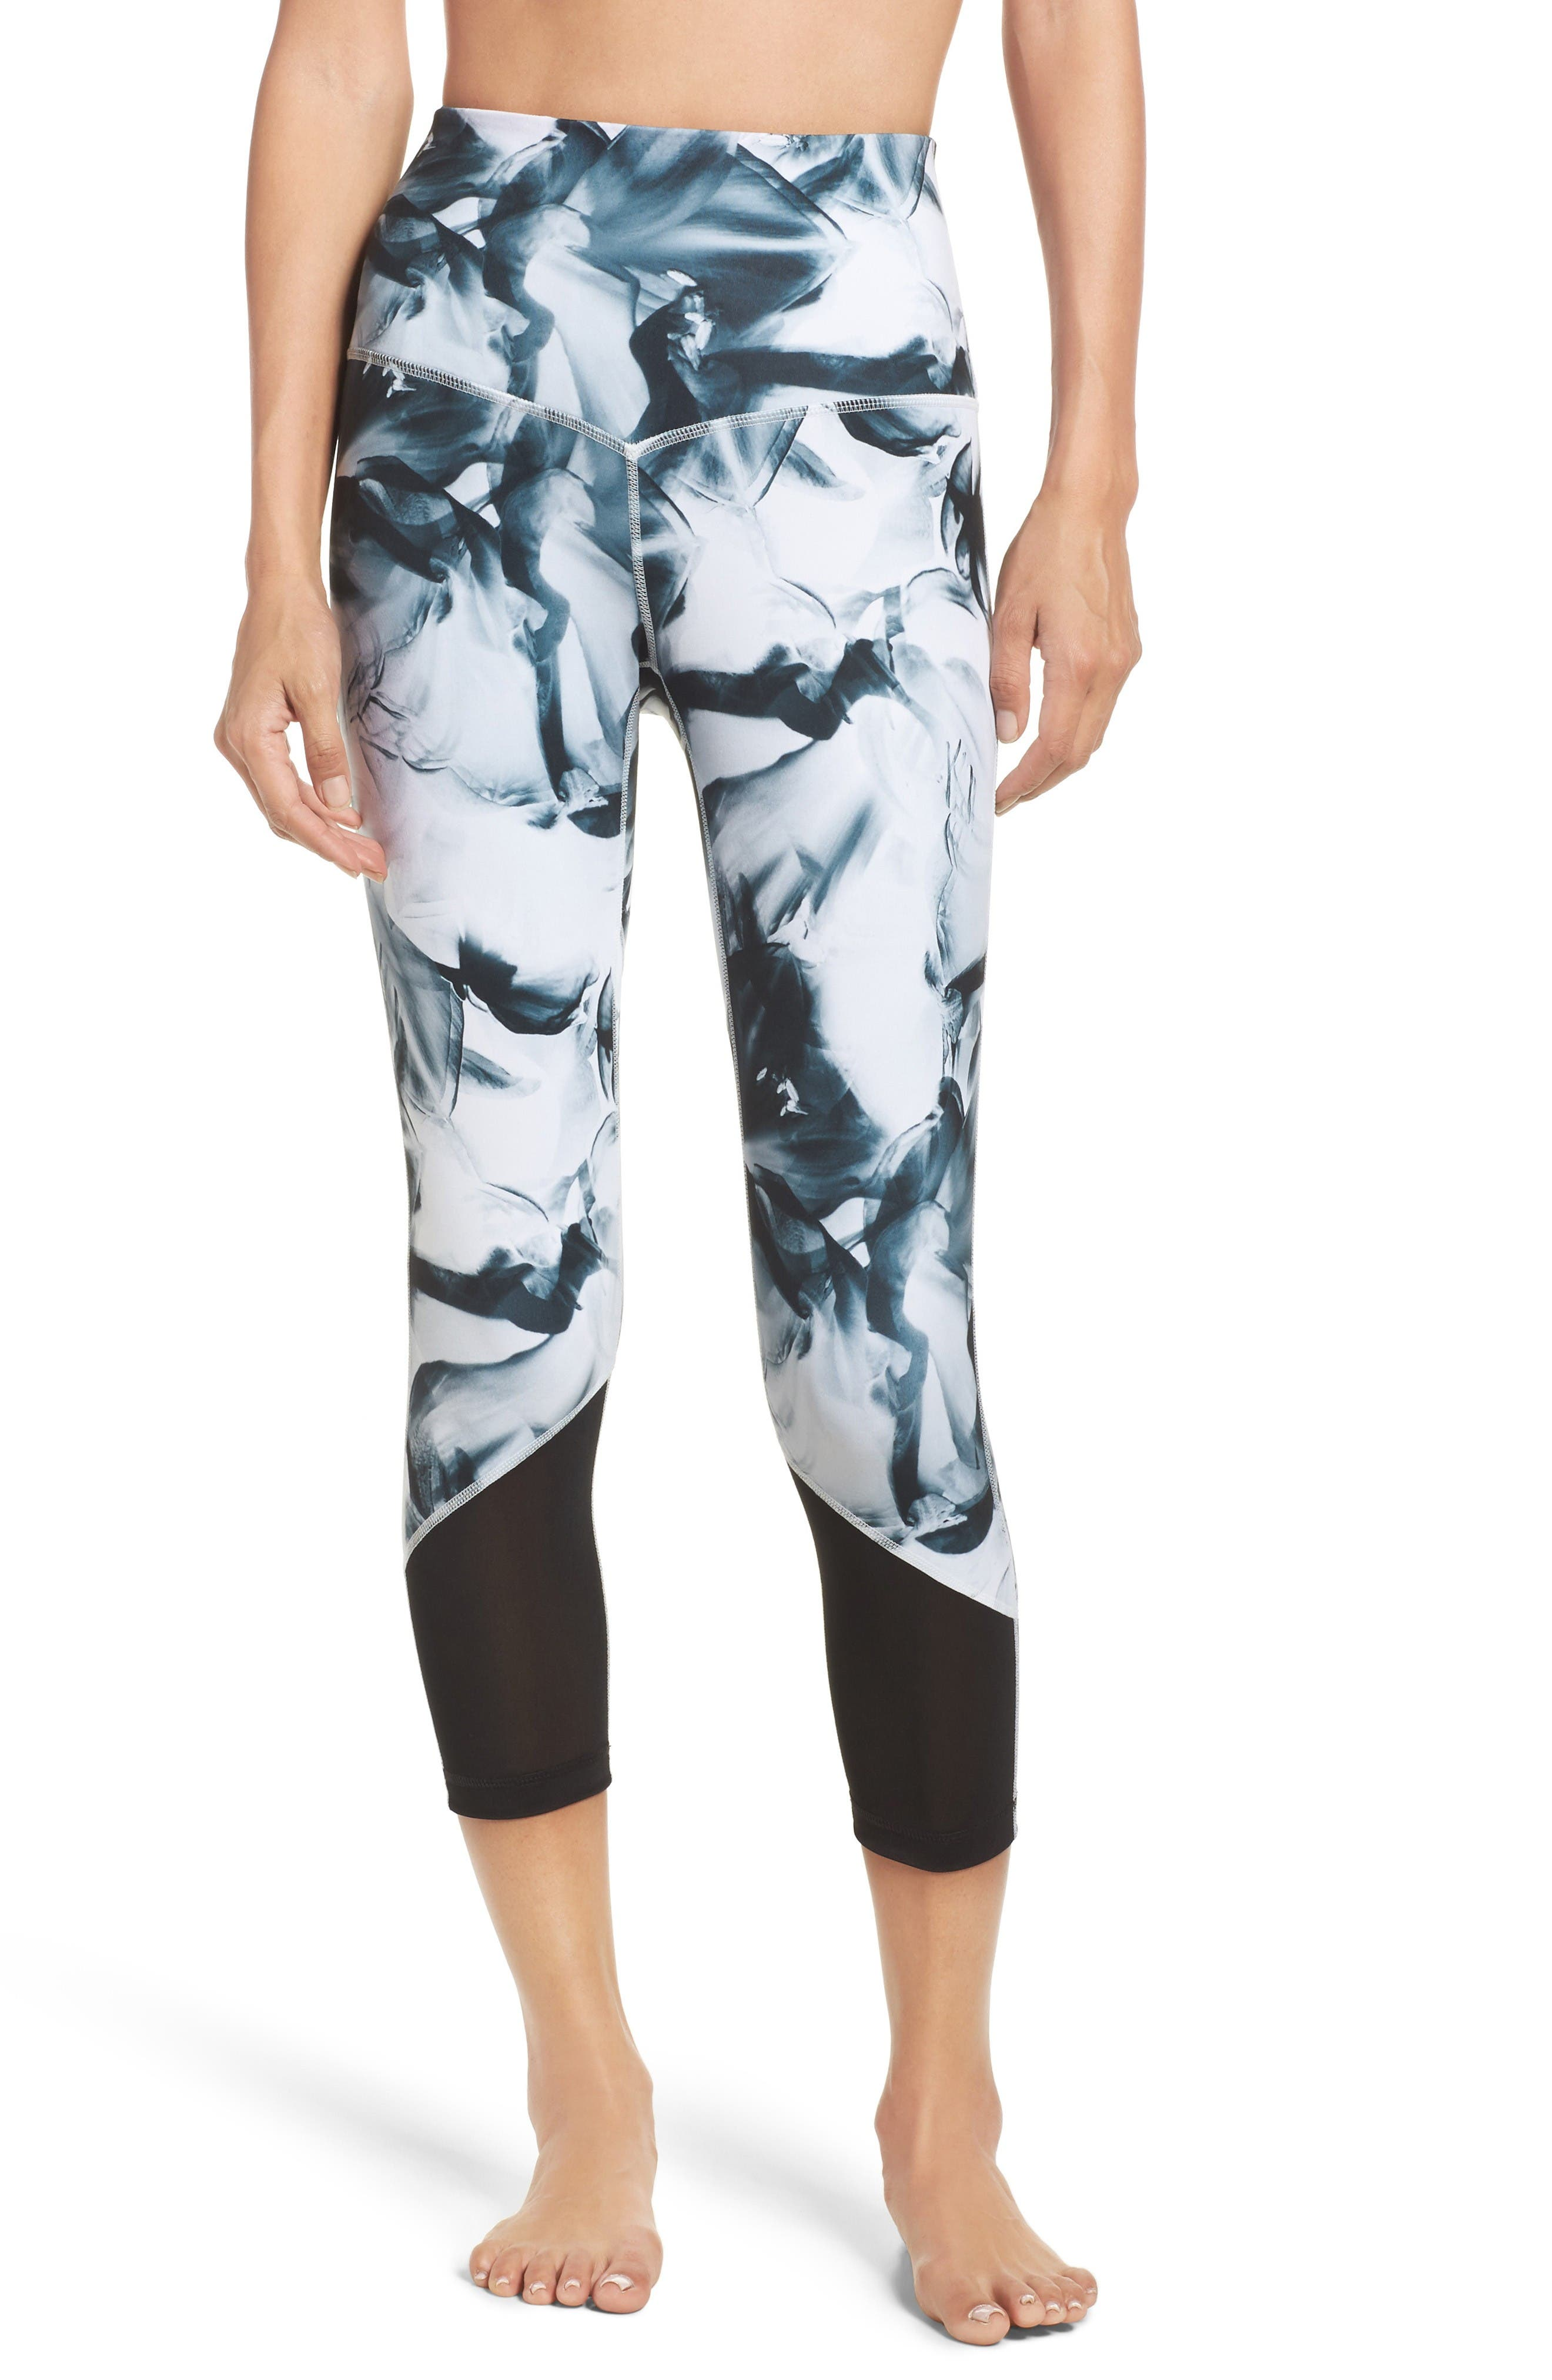 Zella Gemini High Waist Crop Leggings